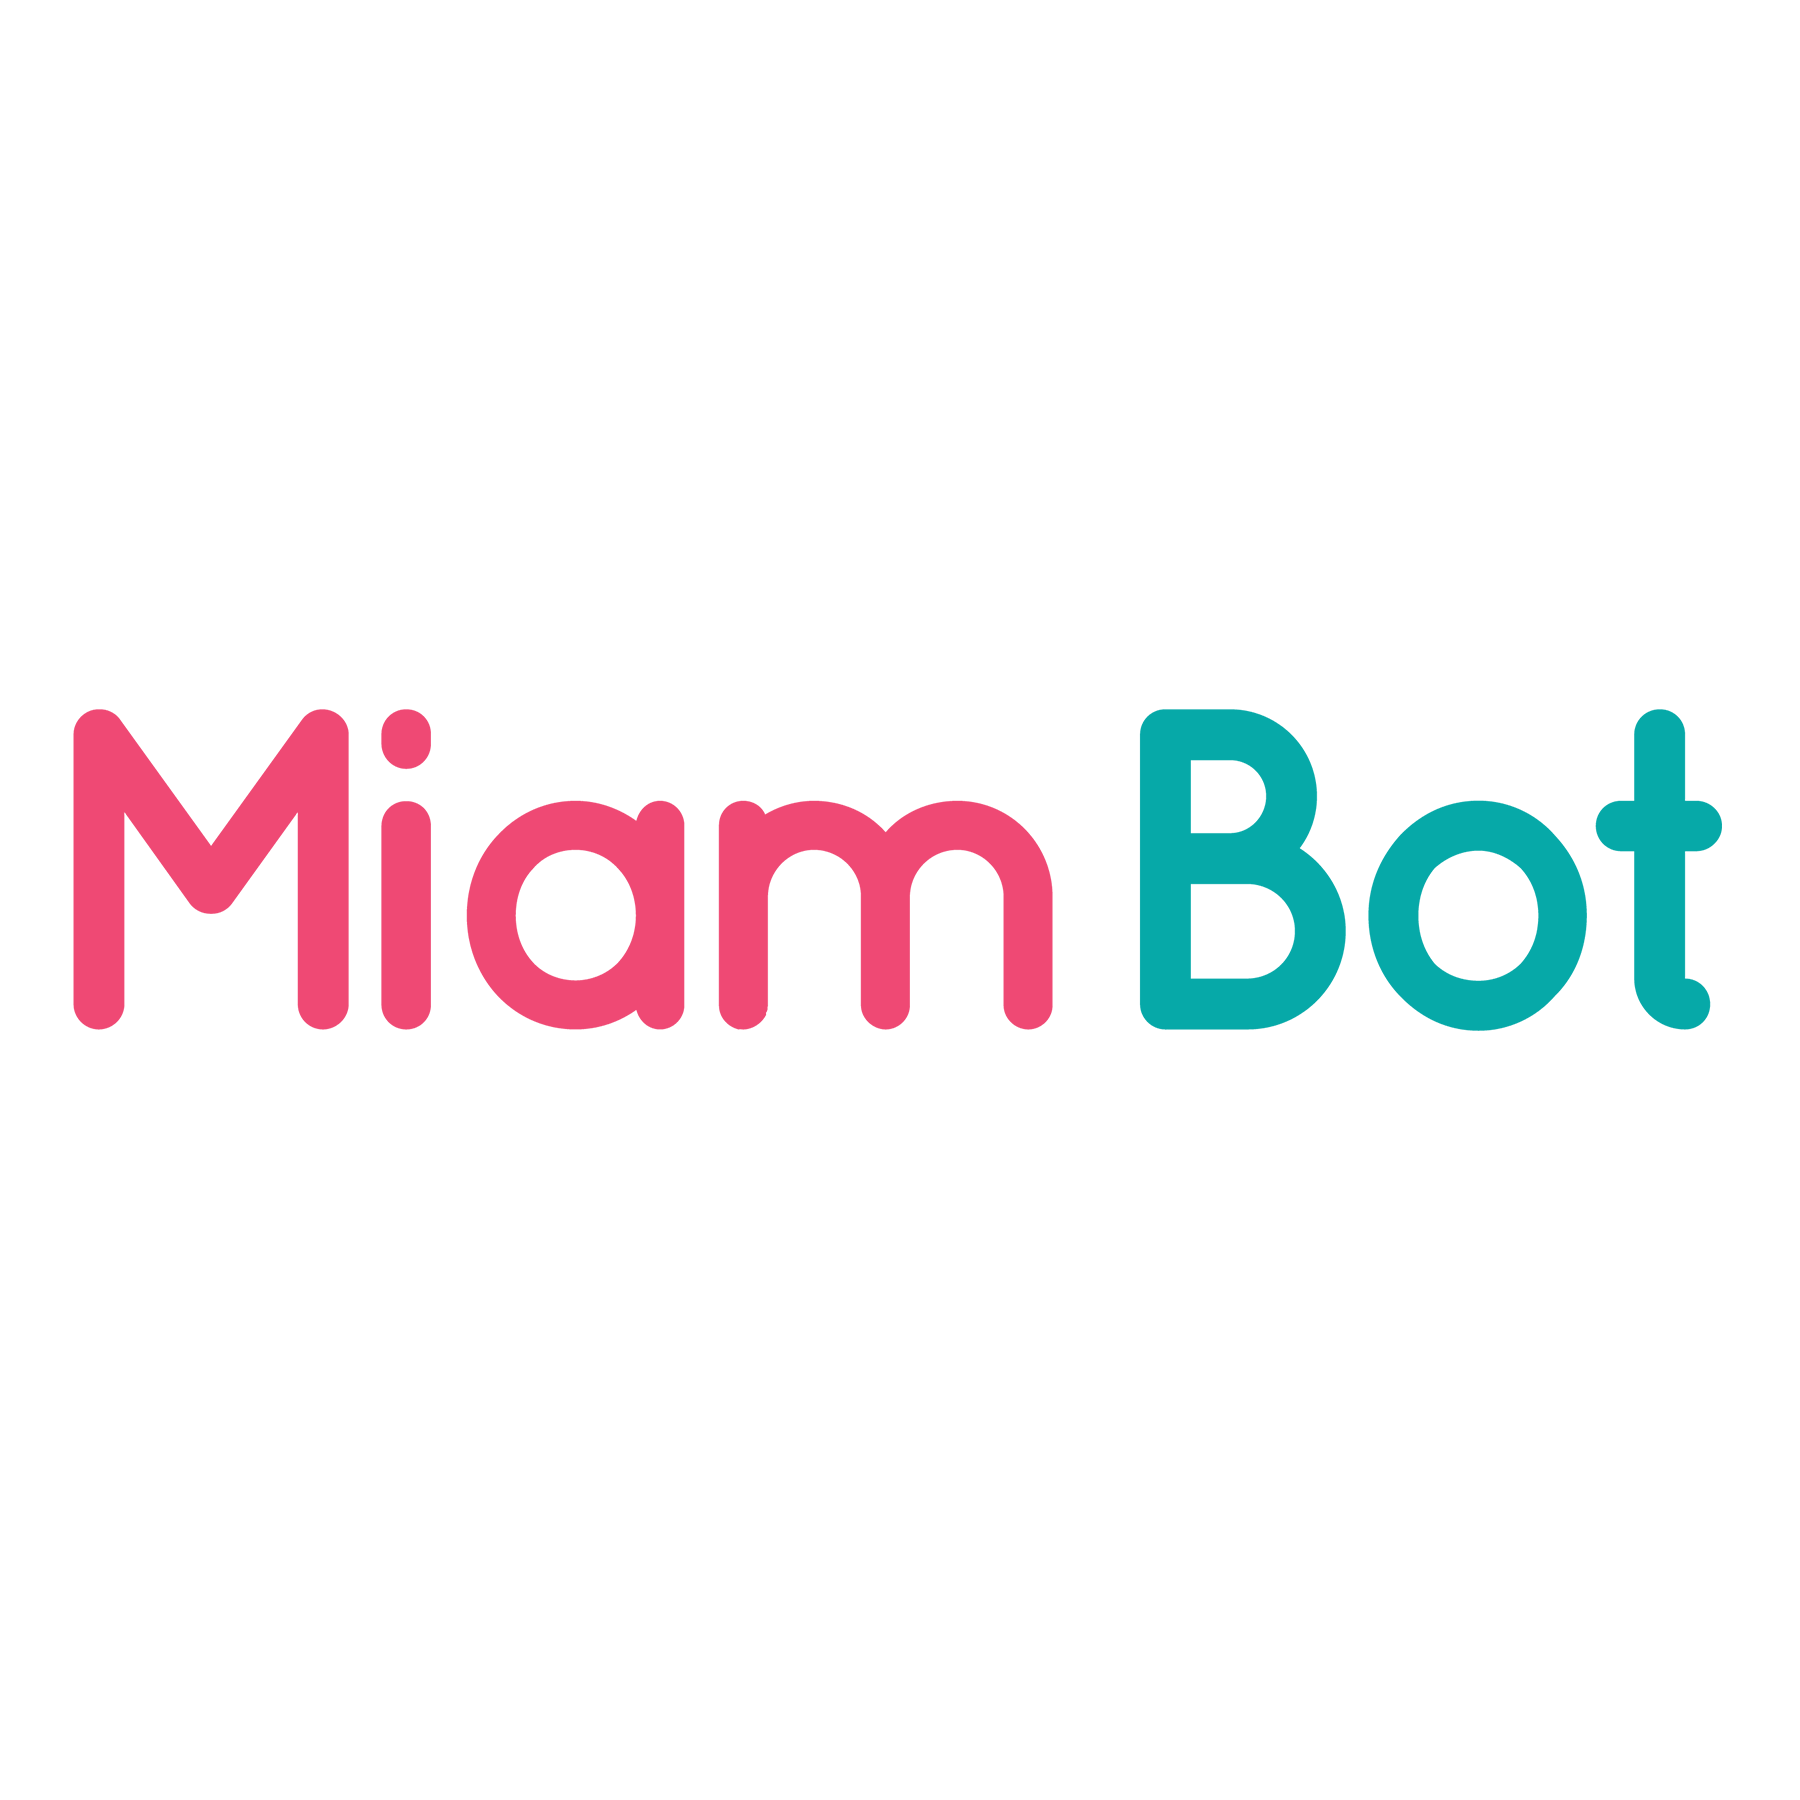 MiamBot for Facebook Messenger